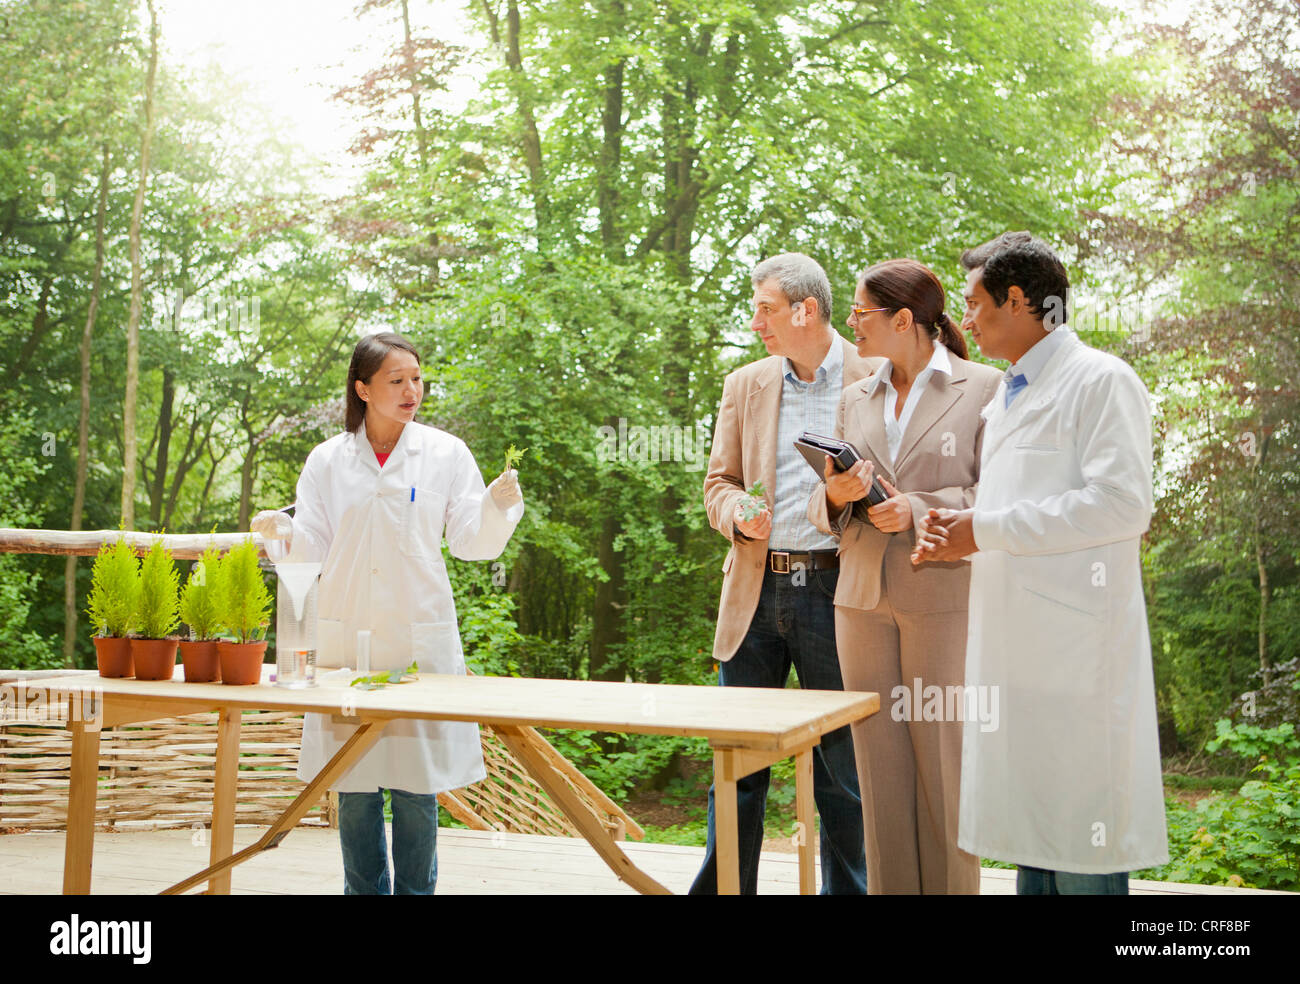 Business people talking with scientists - Stock Image